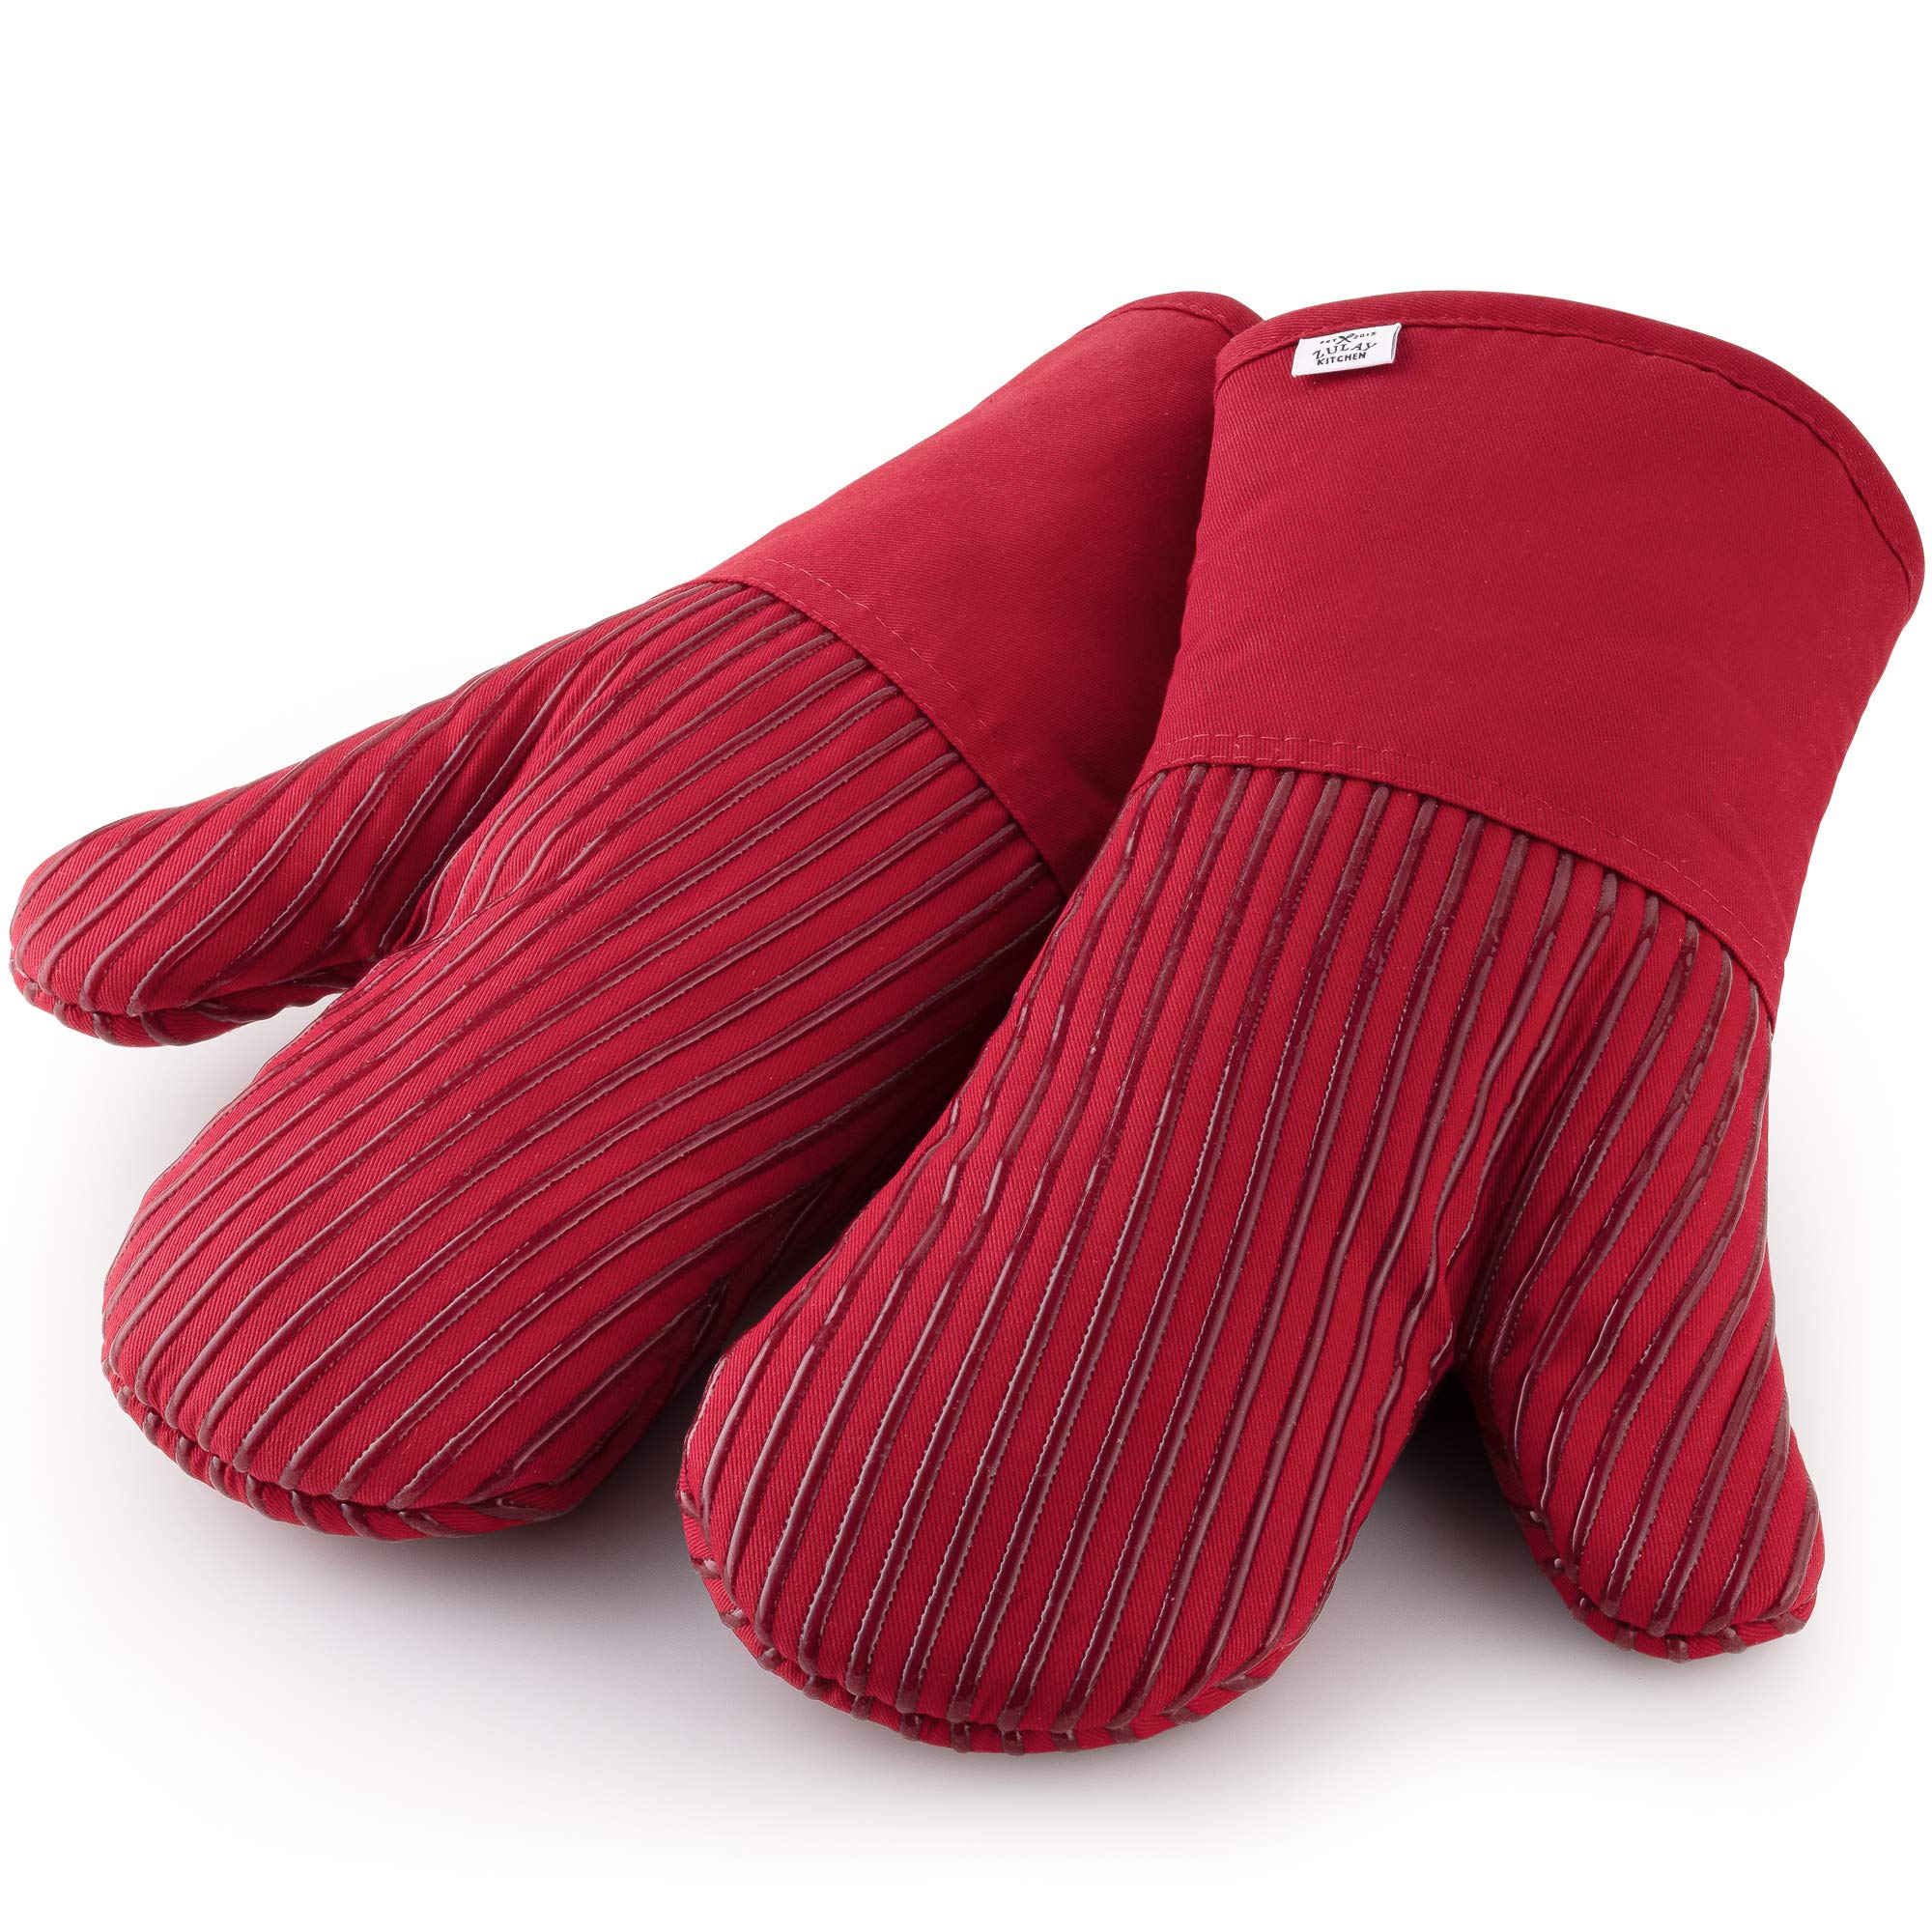 Zulay Professional Oven Mitts - 450F Heat Resistant Thick Cotton Kitchen Mittens with Non Slip Silicone Lining - Comfortable Oven Mittens with Upgraded Thumb Grip for Baking, BBQ & Cooking (Red)